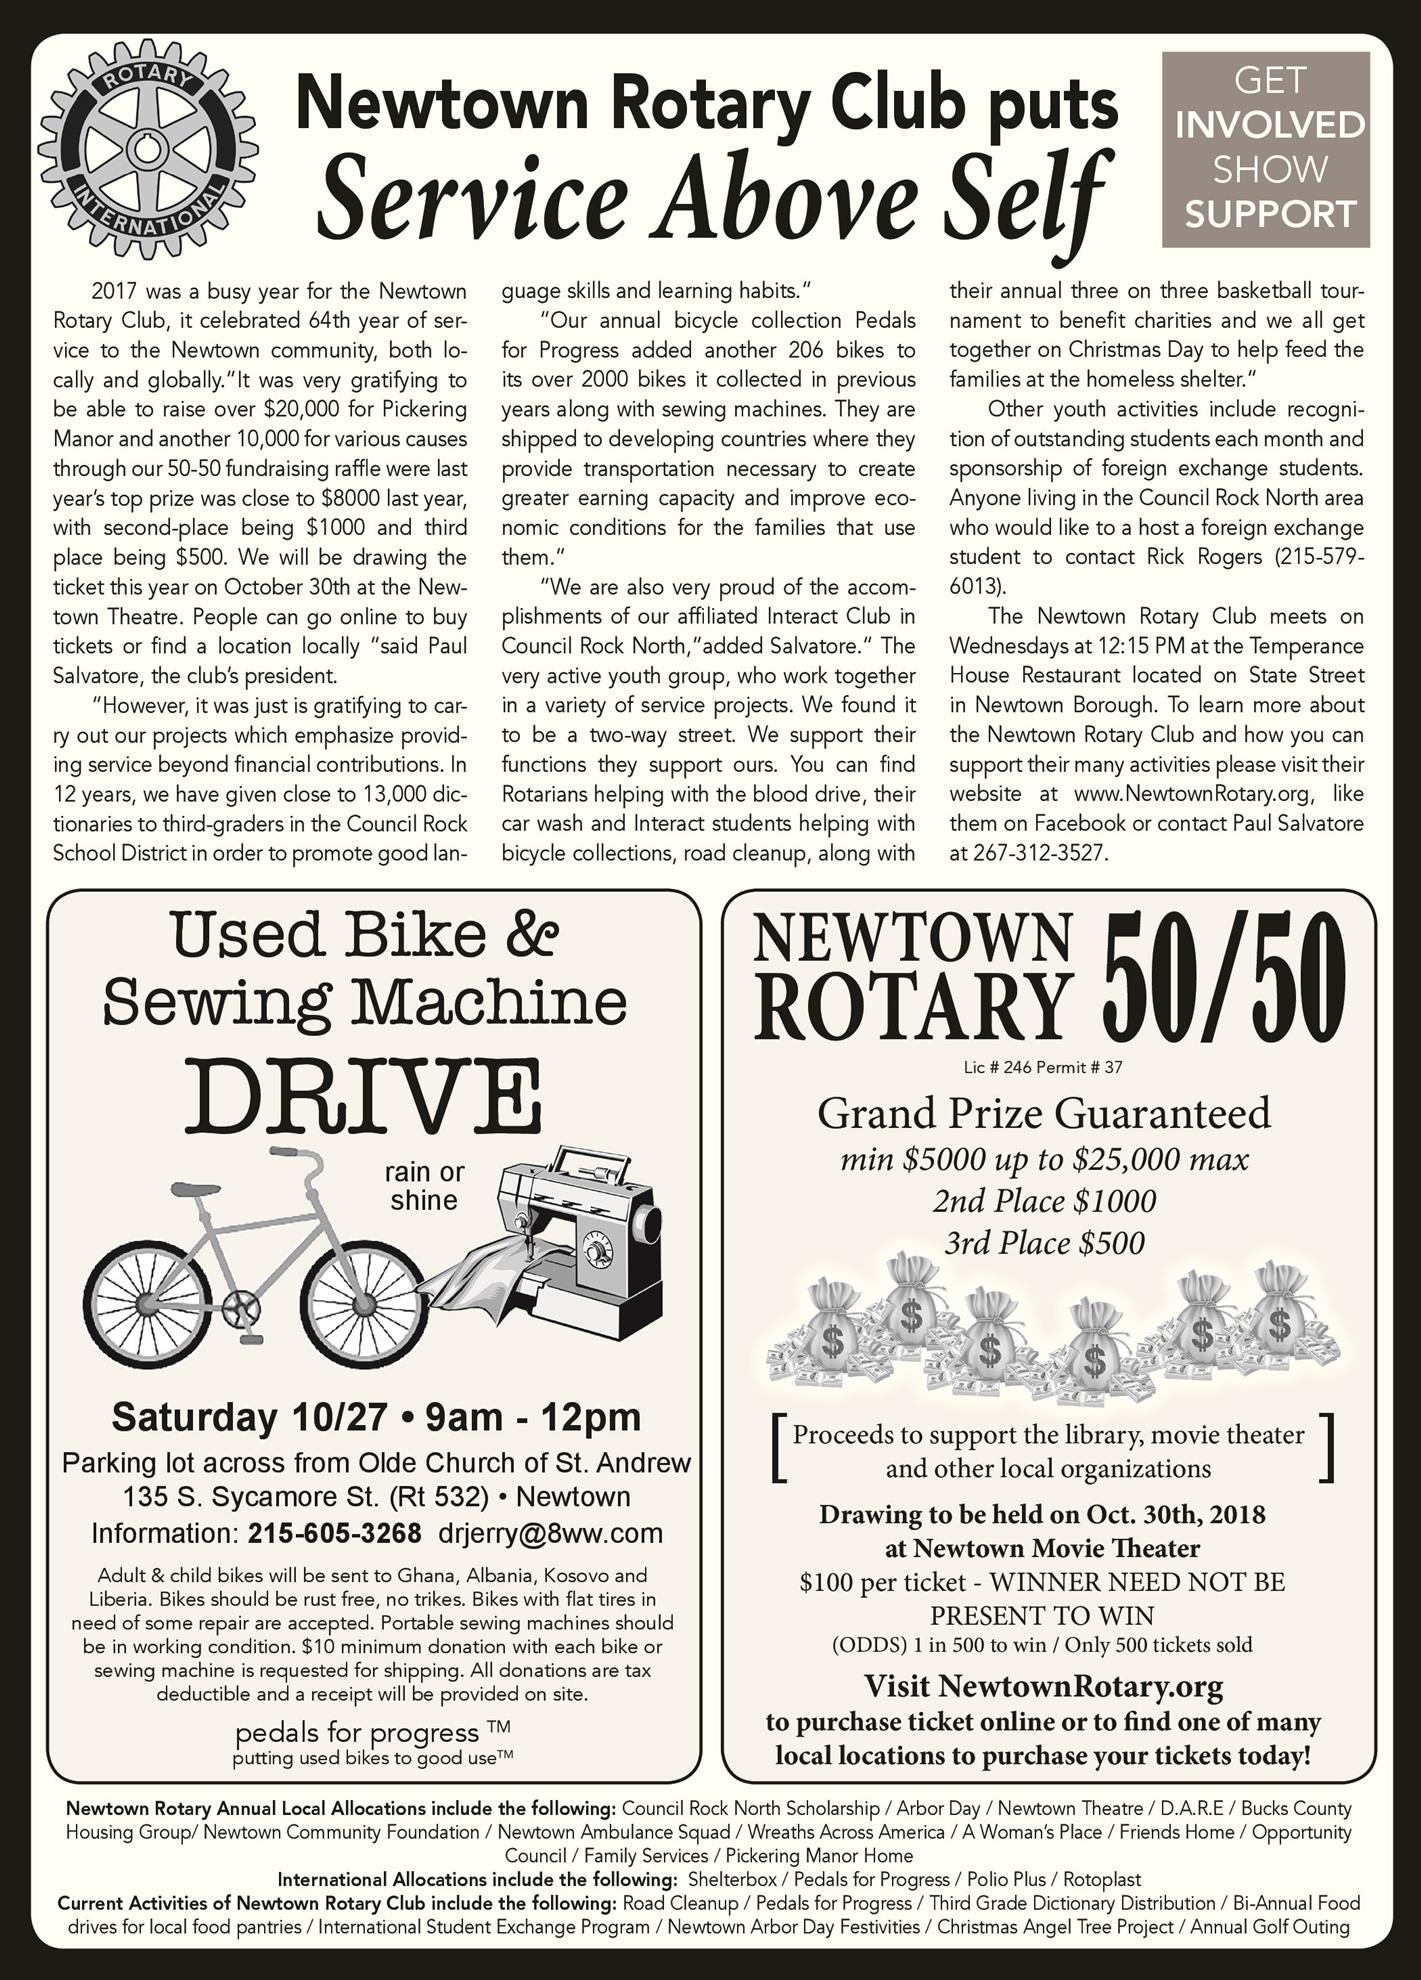 Should We Take Up Collection To Buy >> 50 50 Drawing And Bike Collection Coming Up Rotary Club Of Newtown